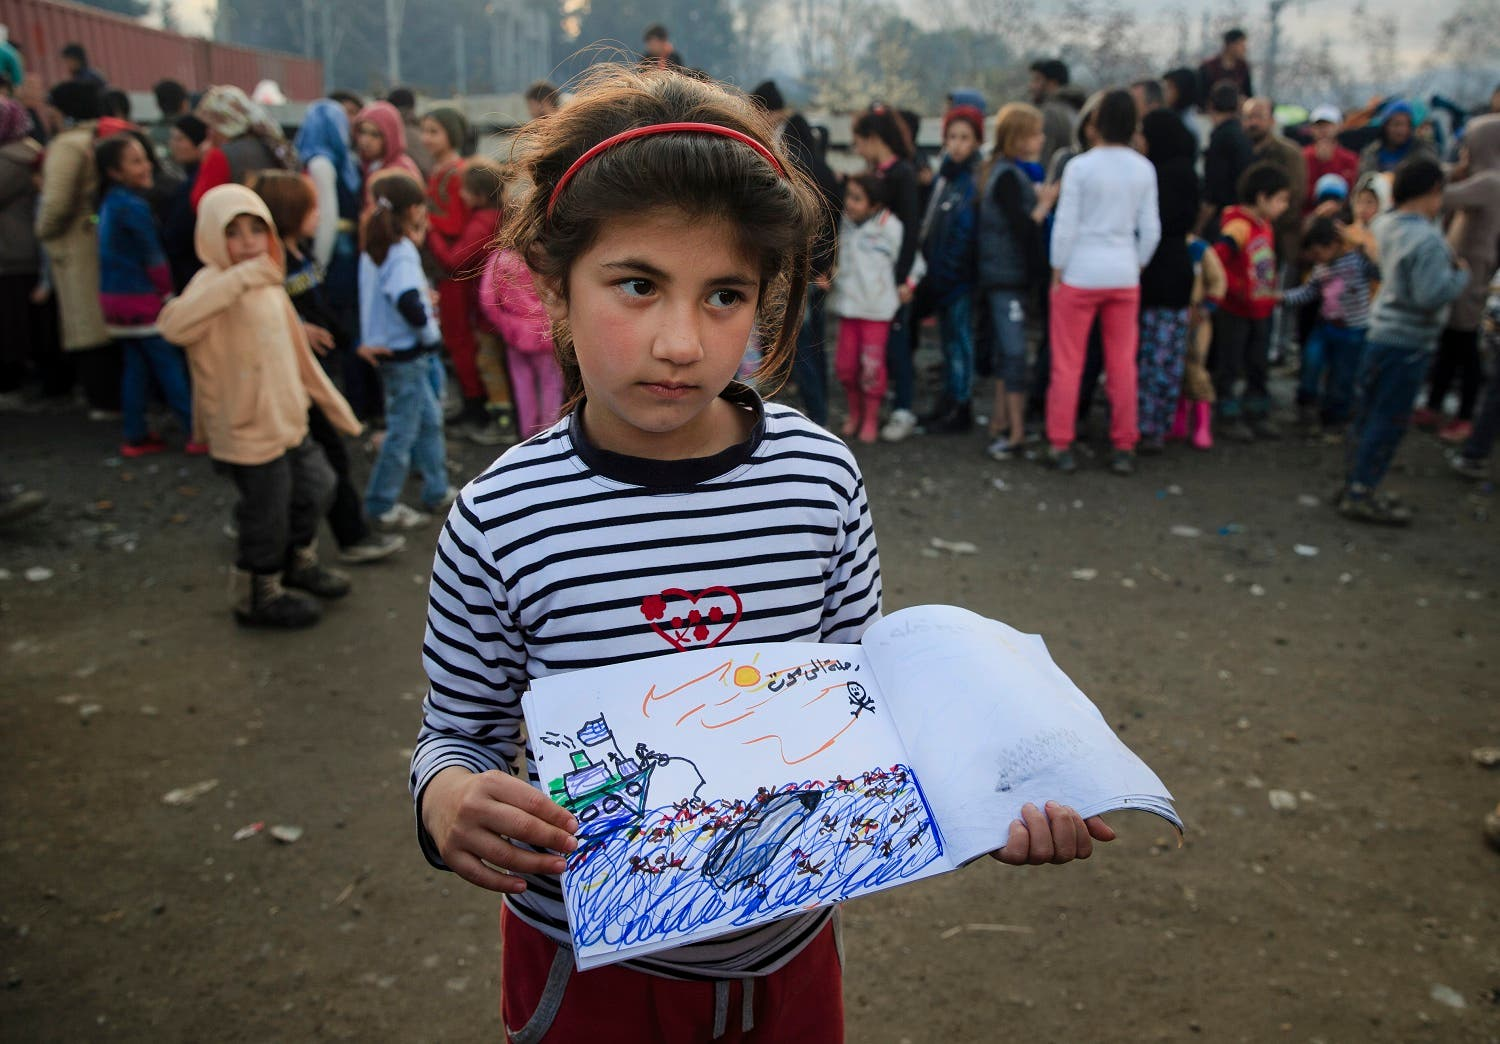 Shaharzad Hassan, 8 year-old from the Syrian city of Aleppo poses with a drawing she made, depicting a migrants rescue operation by the Greek navy, as people wait in line for food rations at the northern Greek border station of Idomeni, Friday, March 11, 2016. At an overcrowded refugee camp on the Greek-Macedonian border, 8-year-old Shaharzad Hassan draws pictures of the harrowing events in her life over the past 18 months: Pictures of death in her home town of Aleppo, Syria, and her perilous journey to Europe. (AP Photo/Vadim Ghirda)